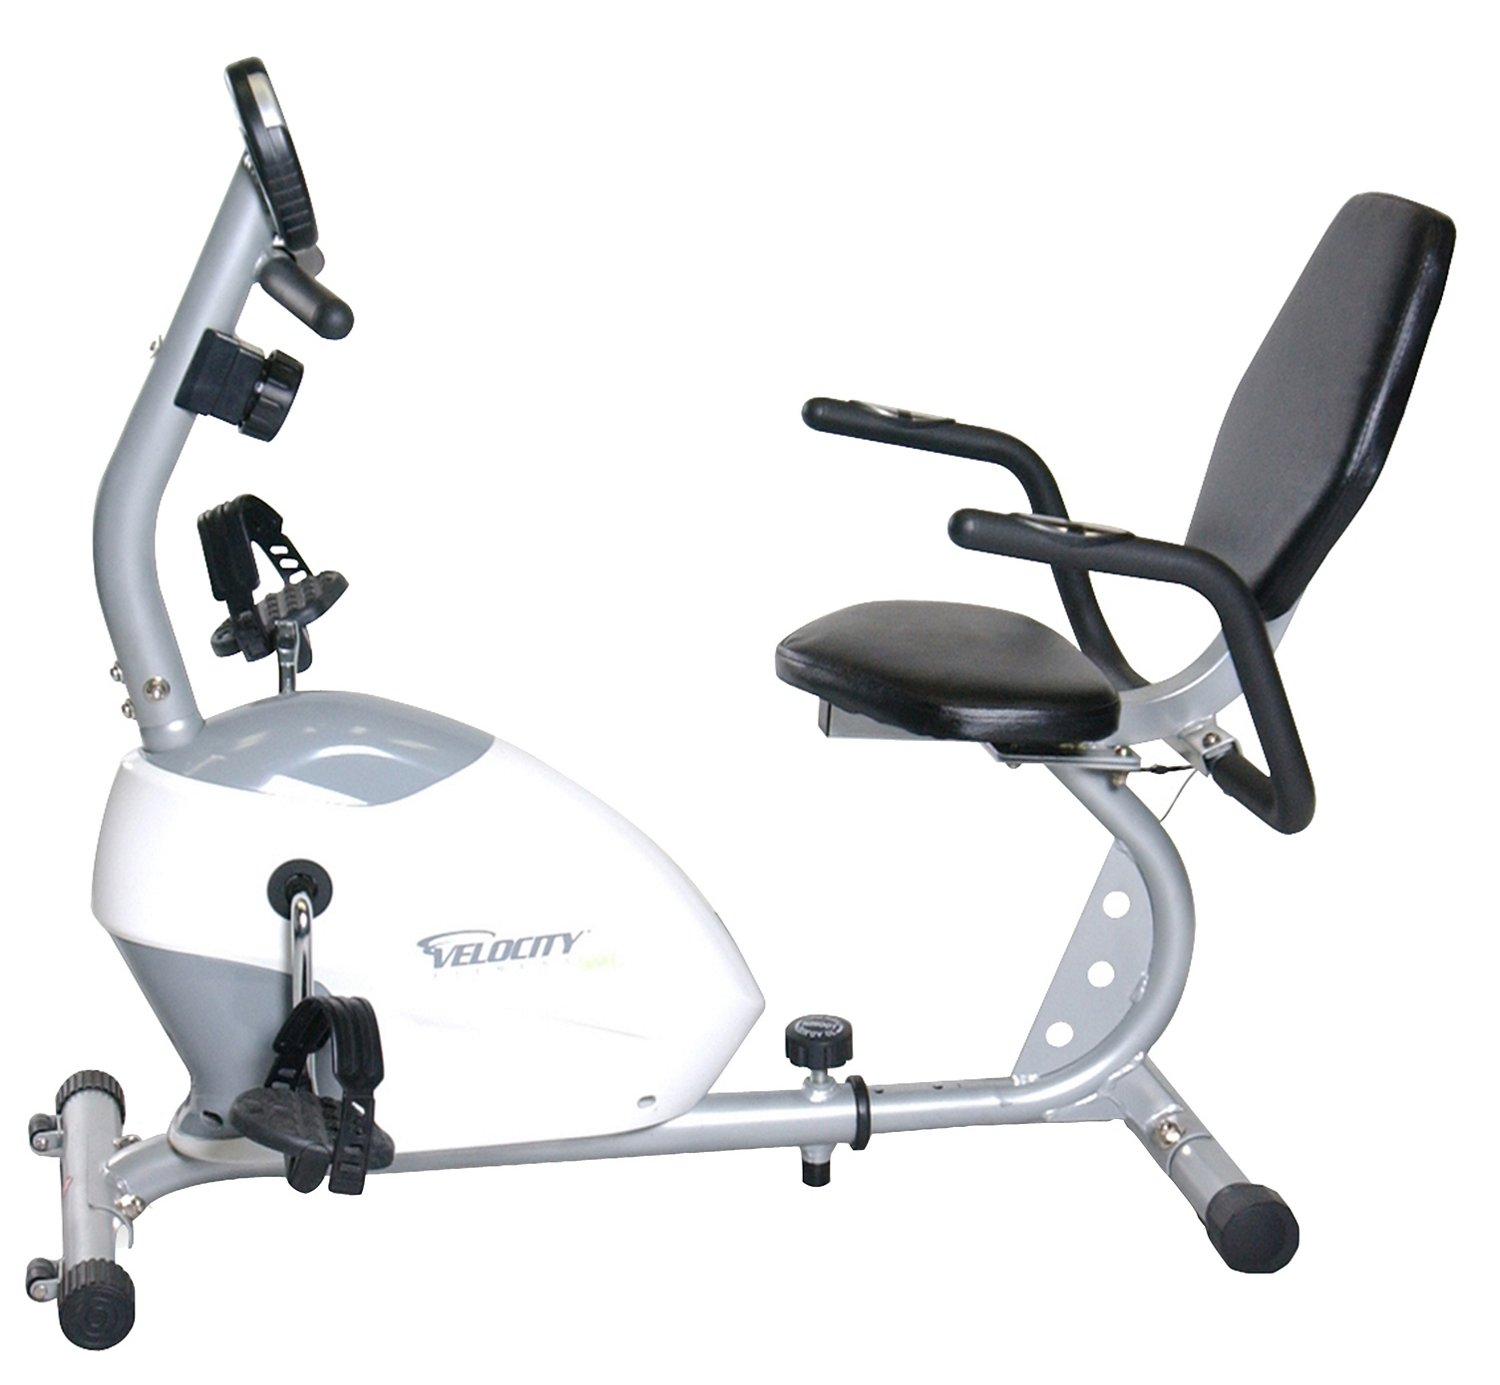 Velocity Fitness Magnetic Recumbent Exercise Bike - view number 3